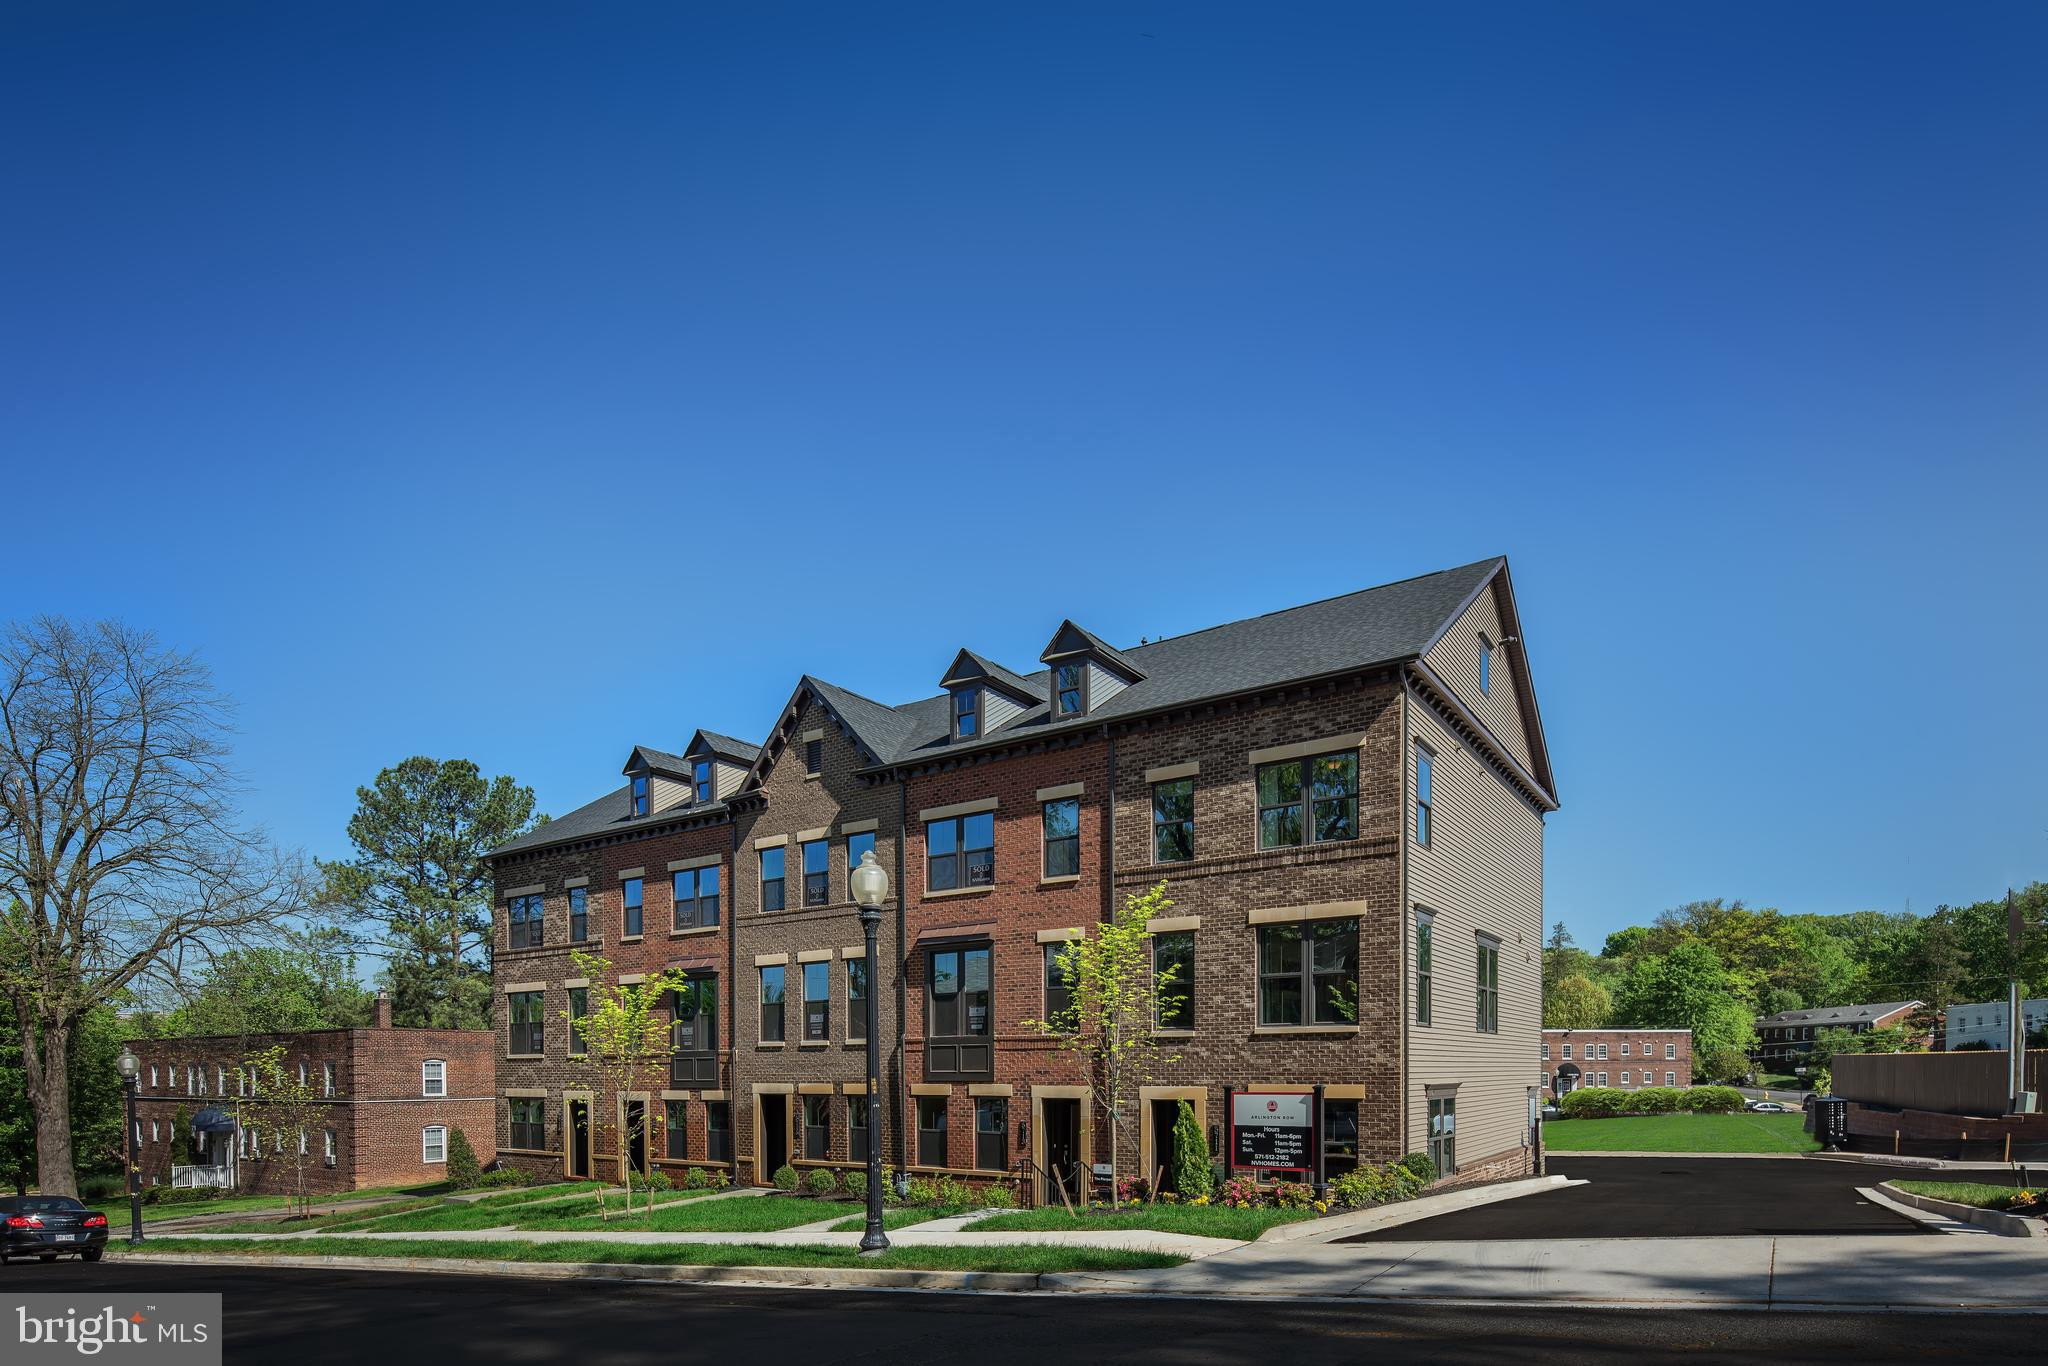 3-5 bedrooms.  up to 4 full baths. Optional 4 level with rooftop terrace.  2 car garage.  Arlington Row is one of the absolute best townhome opportunities in Arlington. Don~t miss your chance to own one of the few homes we~ll offer here.  Receive 10k in CC with NVRM.